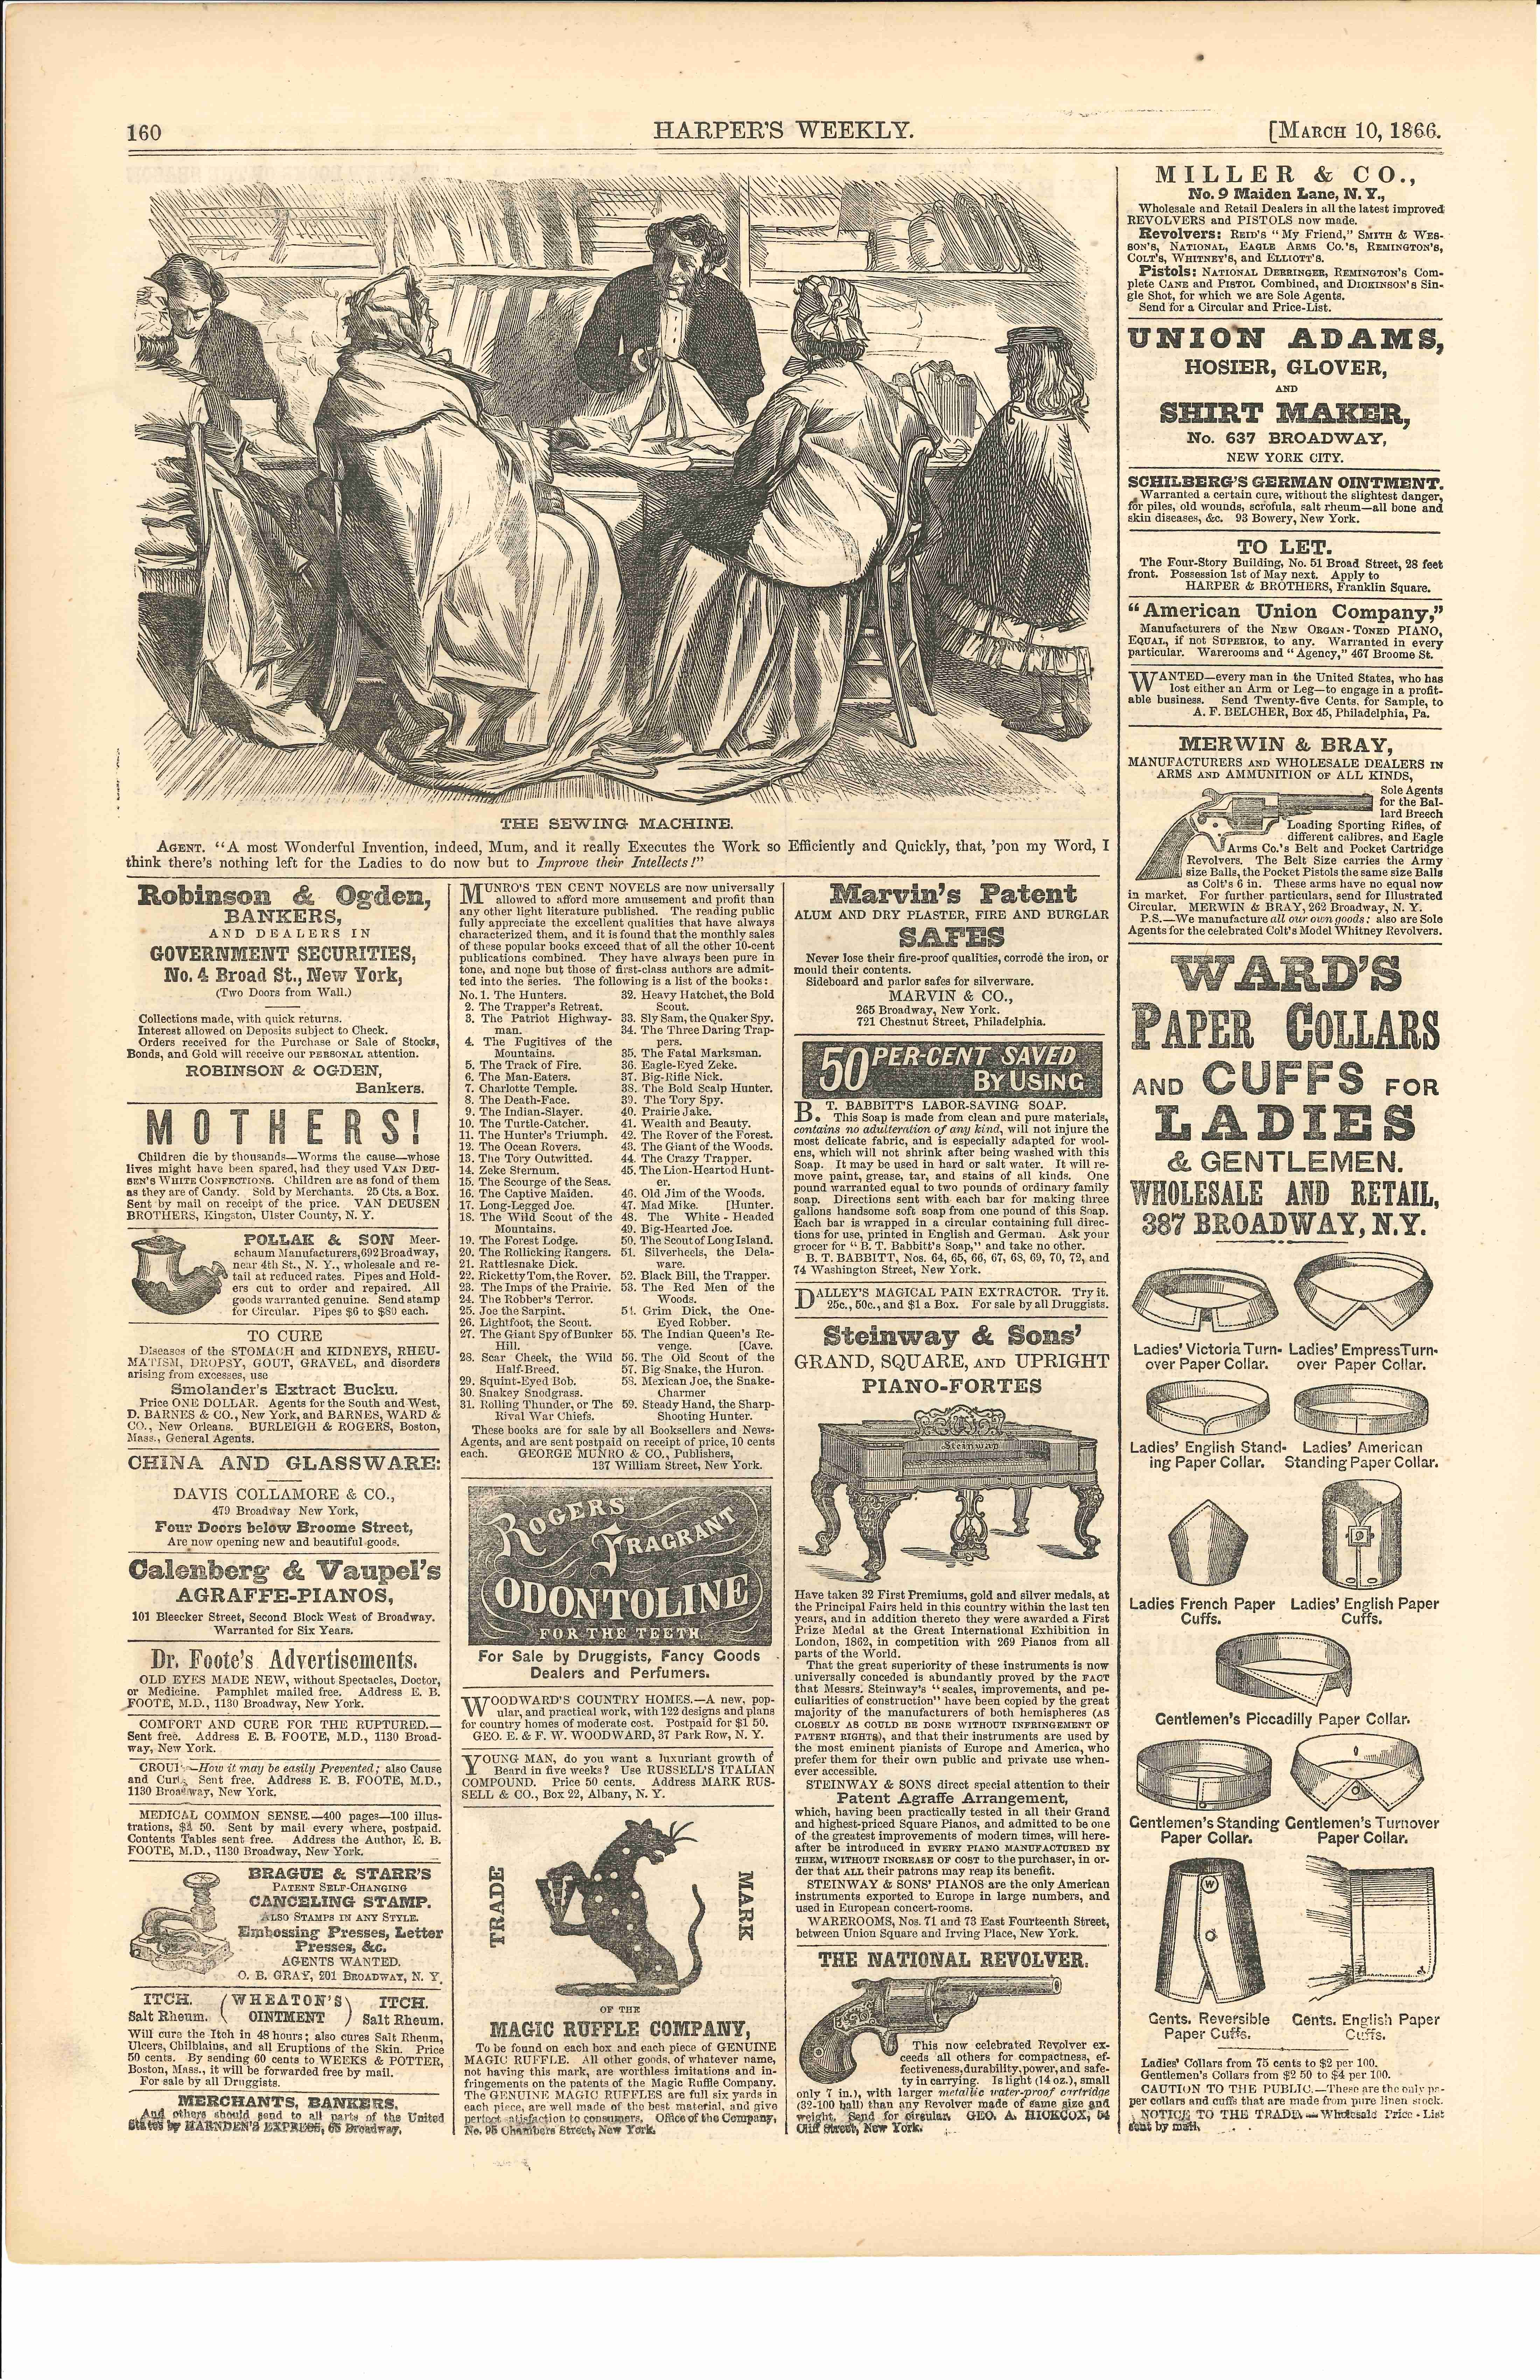 Harpers Weekly 1866 Improve Intellect - Front.jpg